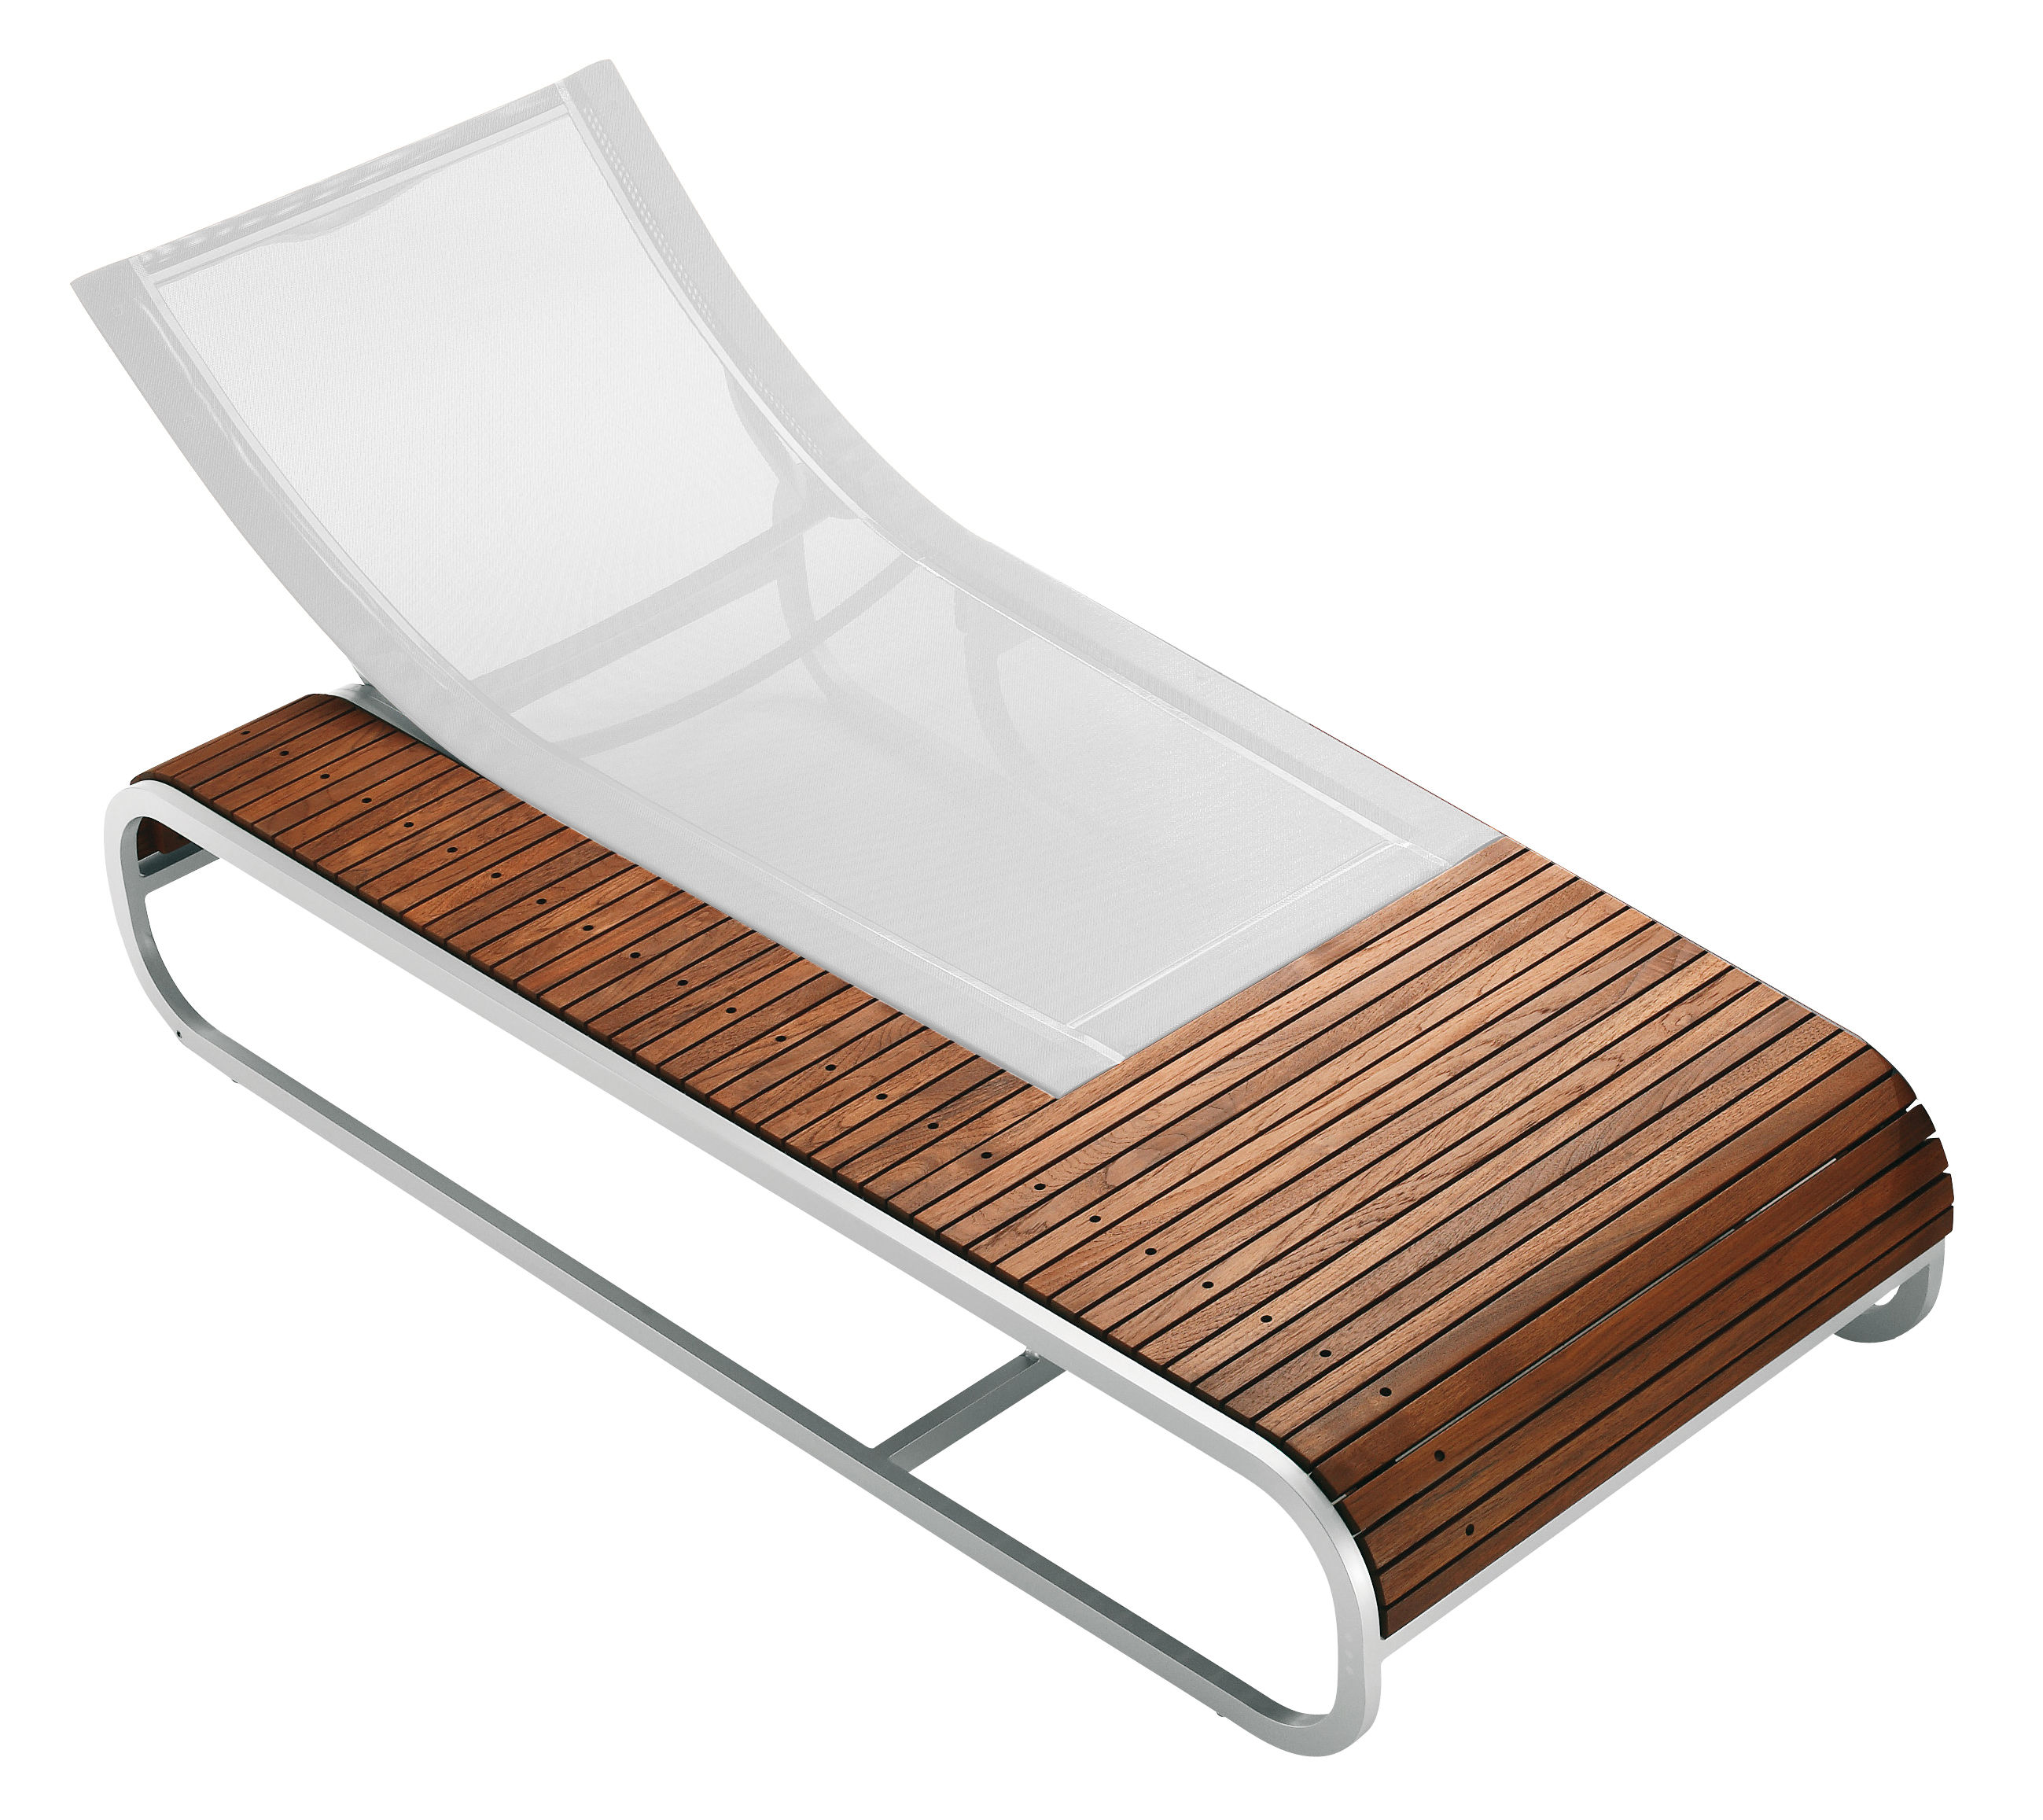 Teak Liege Tandem Reclining Chair Teak Version By Ego Paris